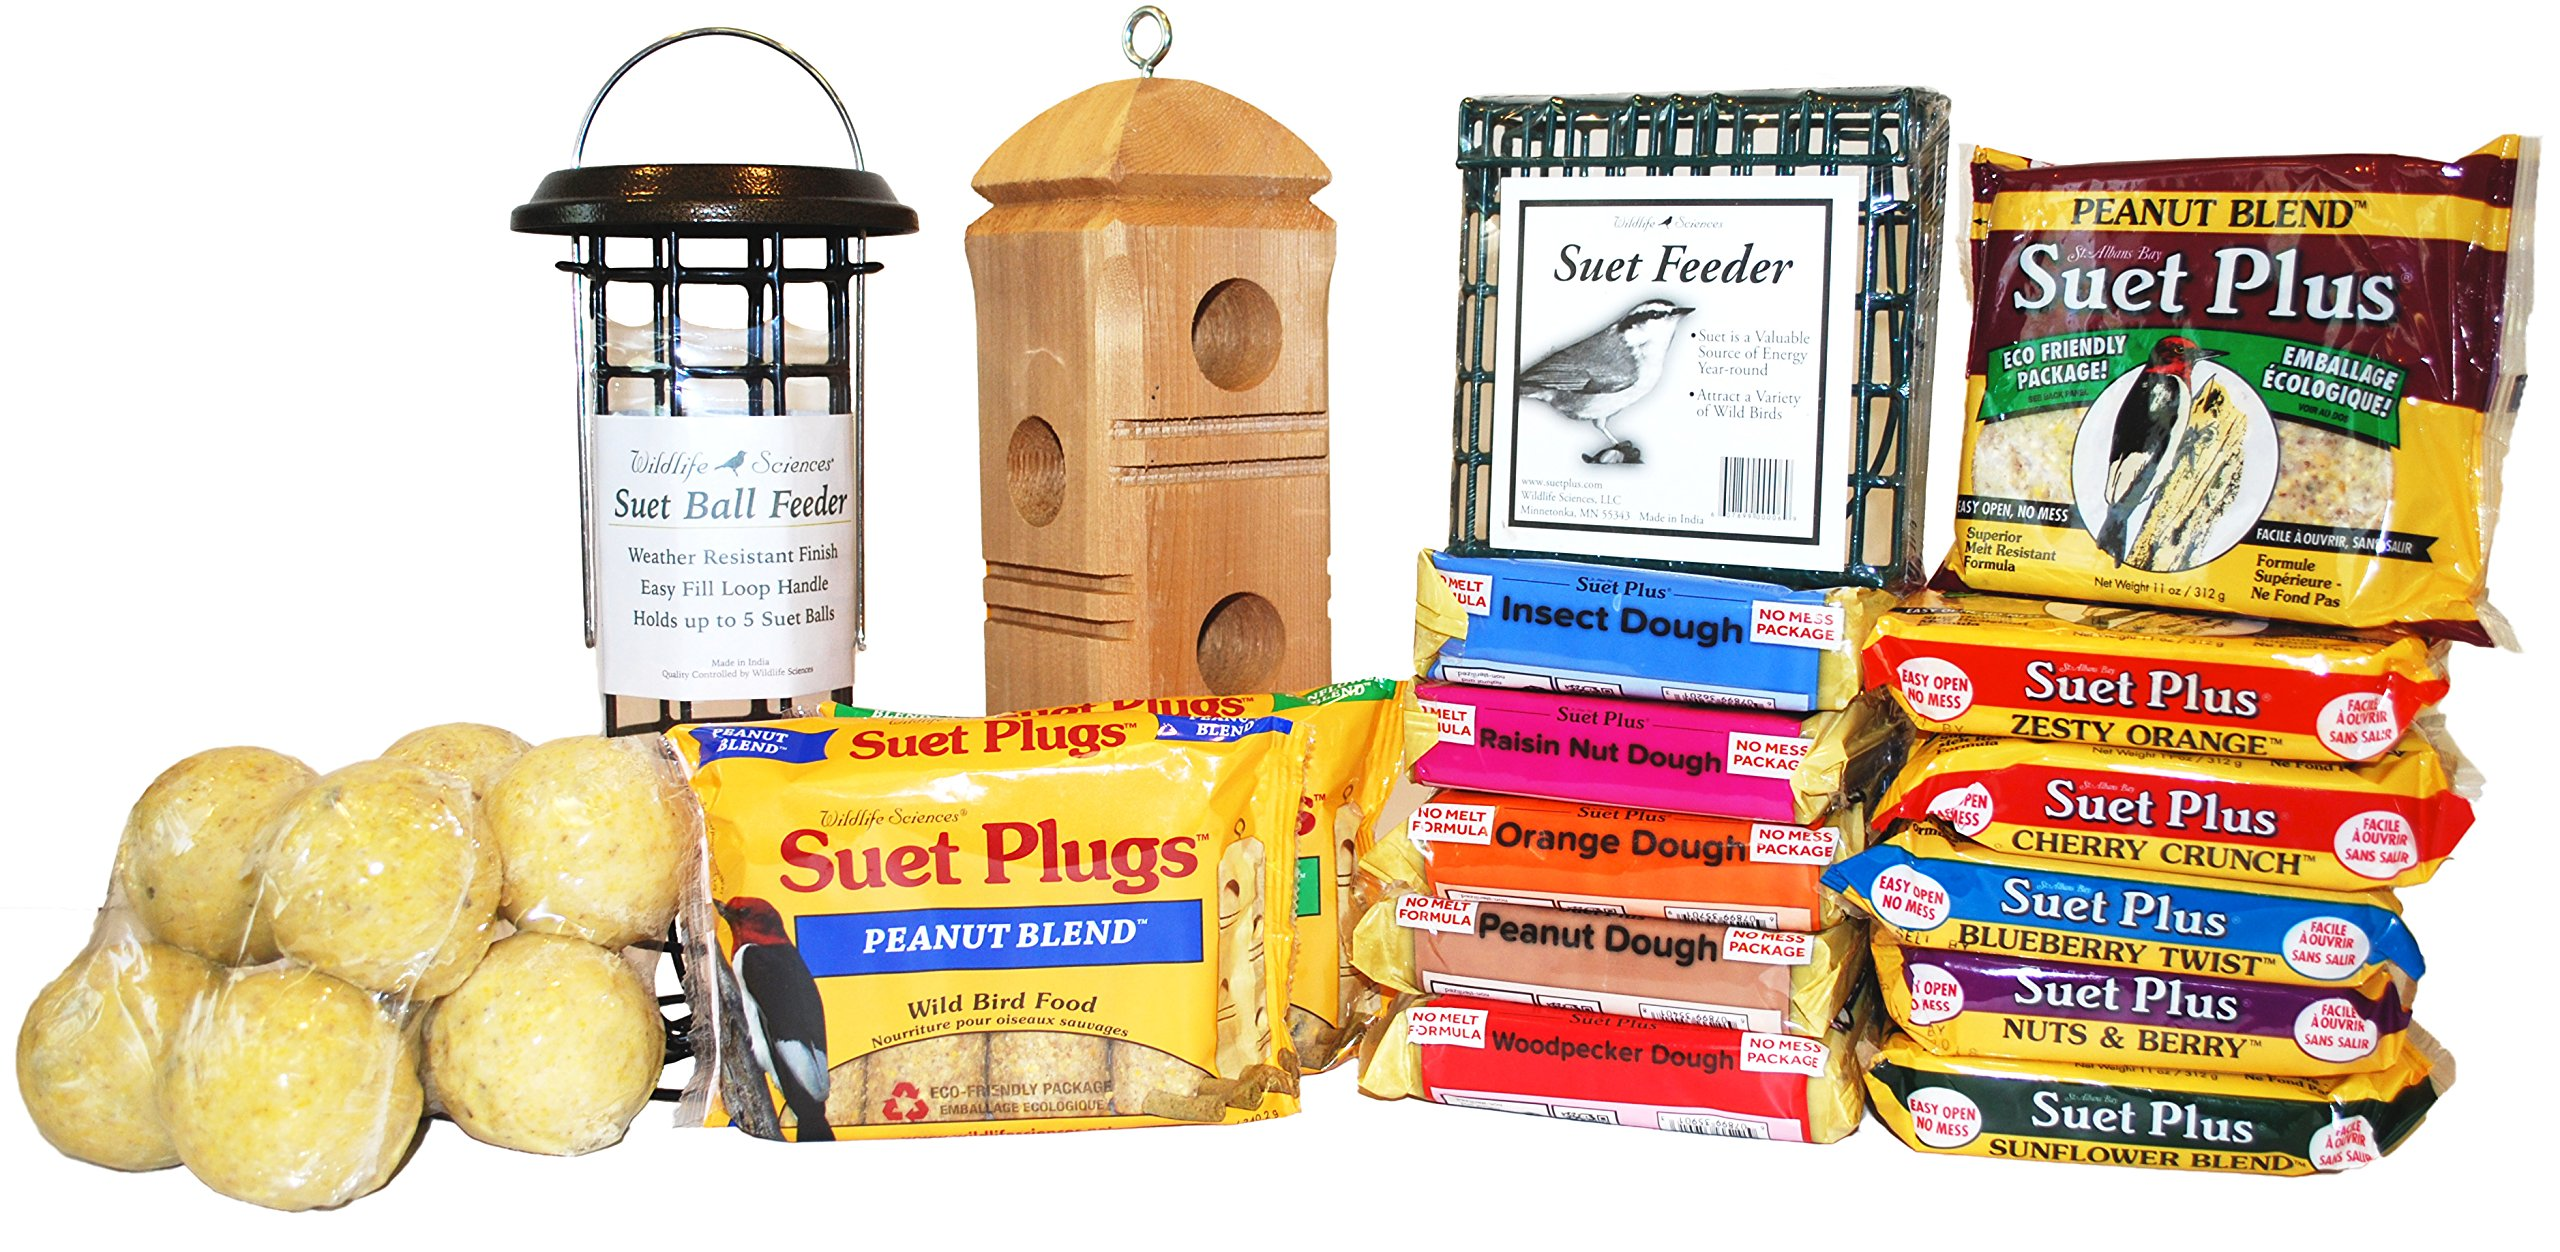 Ultimate Suet Pack for Wild Birds with 30 Items, Suet Cakes, Suet Feeders, Suet Balls, and Suet Plugs by ST. ALBANS BAY SUET PLUS